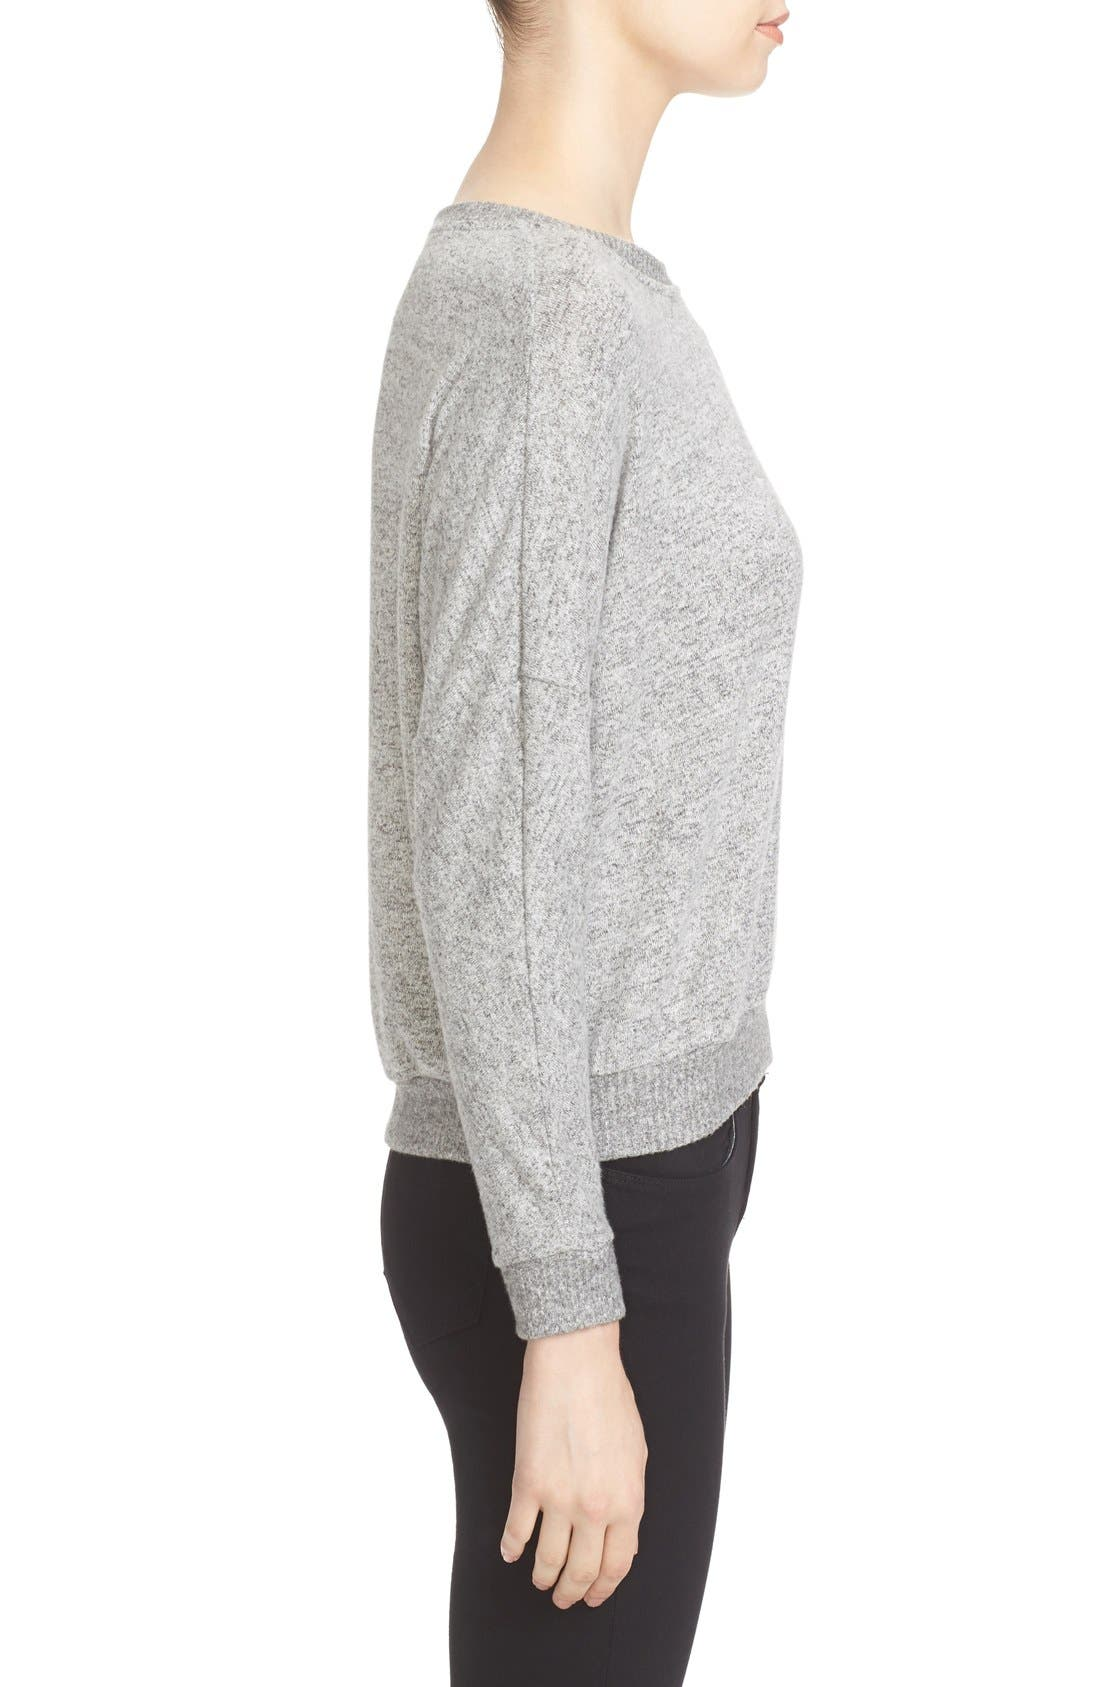 Soft Joie Giardia Drop Shoulder Sweater,                             Alternate thumbnail 8, color,                             099